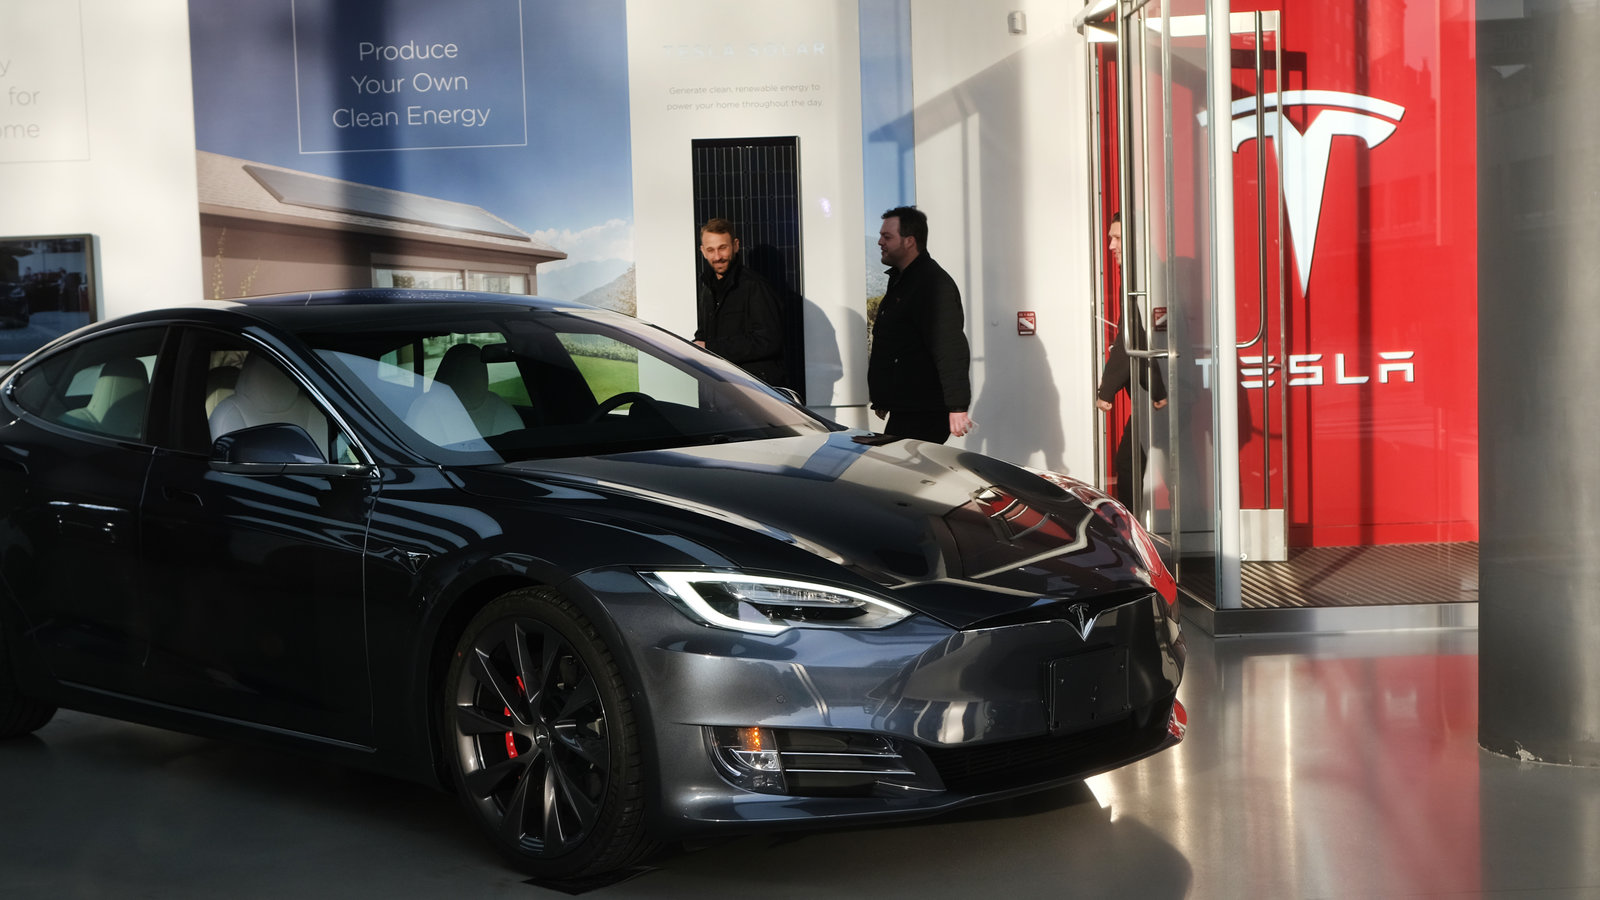 Tesla Stock Price Gains 14%, Leaves Wall Street Analysts Baffled